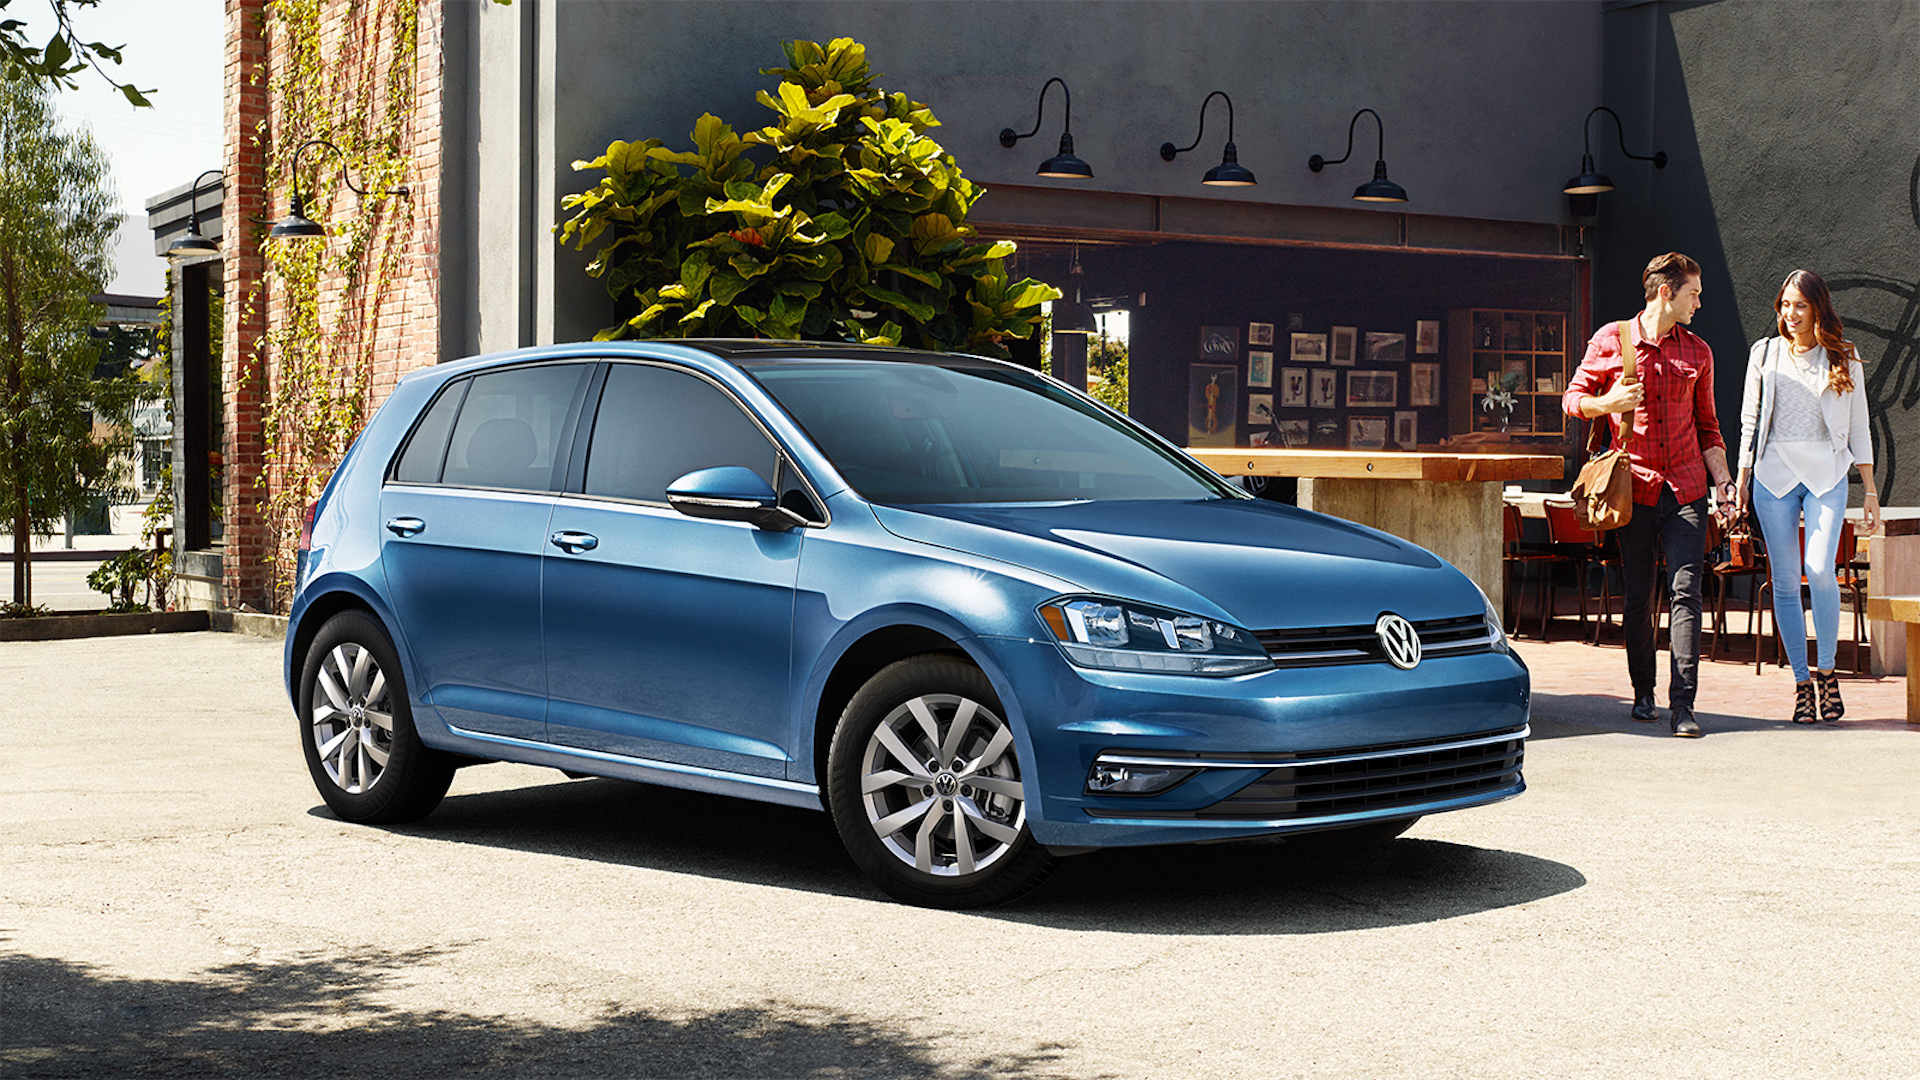 2020 Volkswagen Golf (Vw) Review, Ratings, Specs, Prices